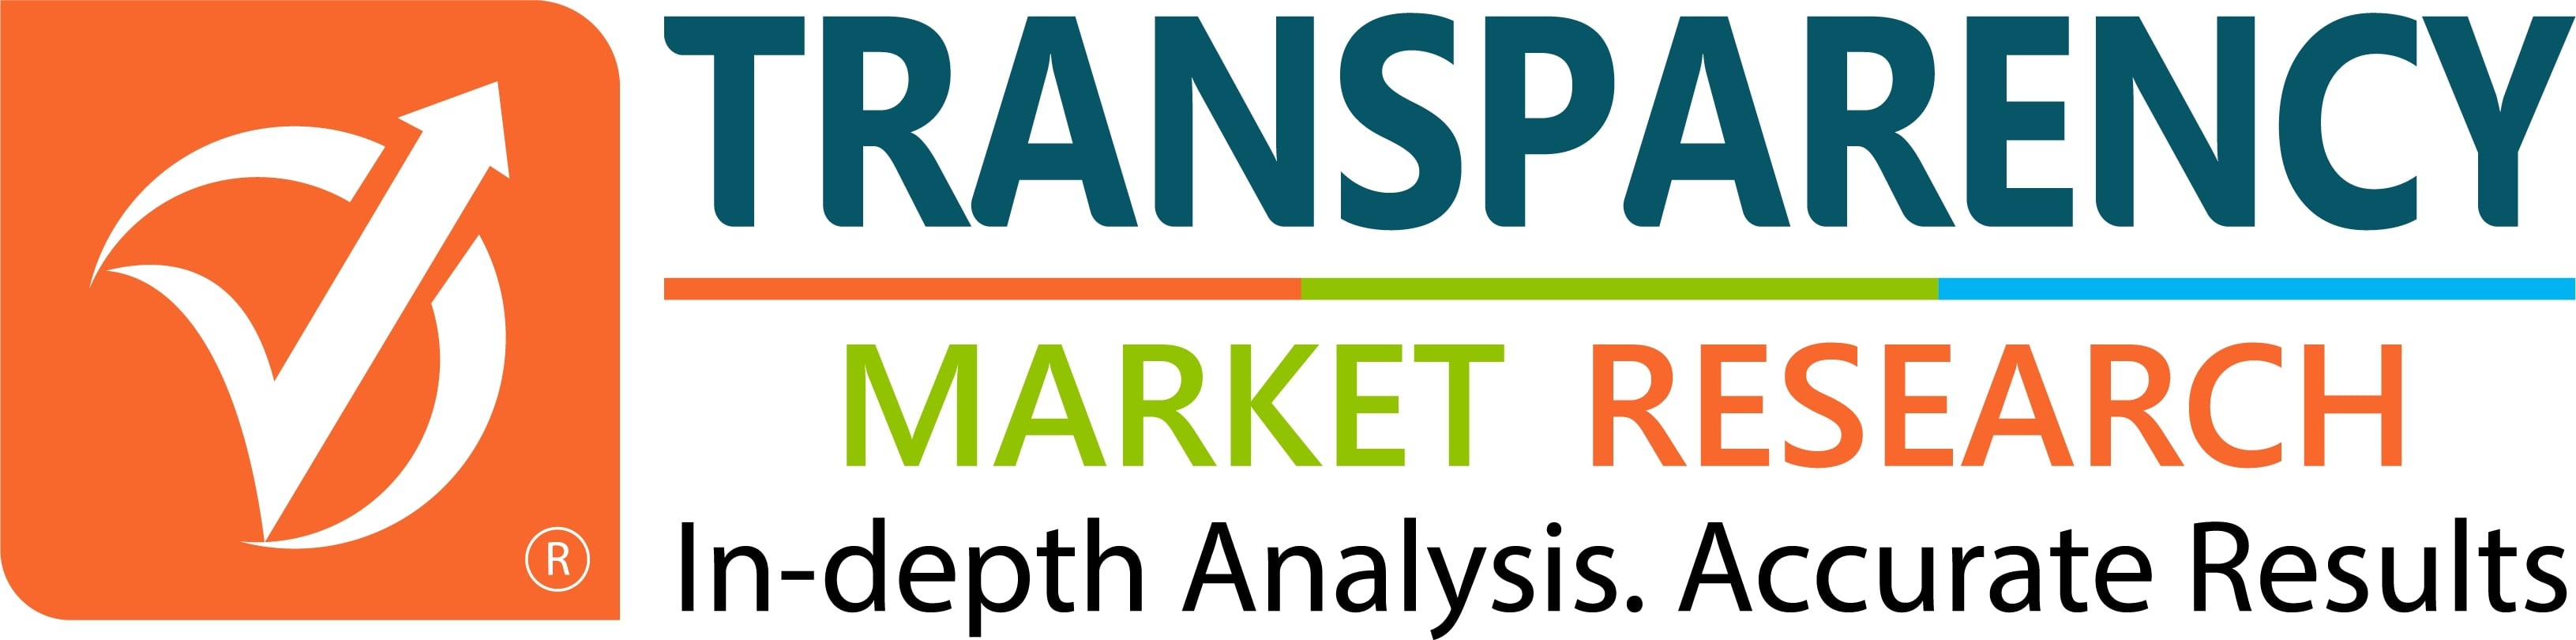 Hospital Asset Management Market is Assessed to Expand at a CAGR of 9.5% from 2019 to 2027